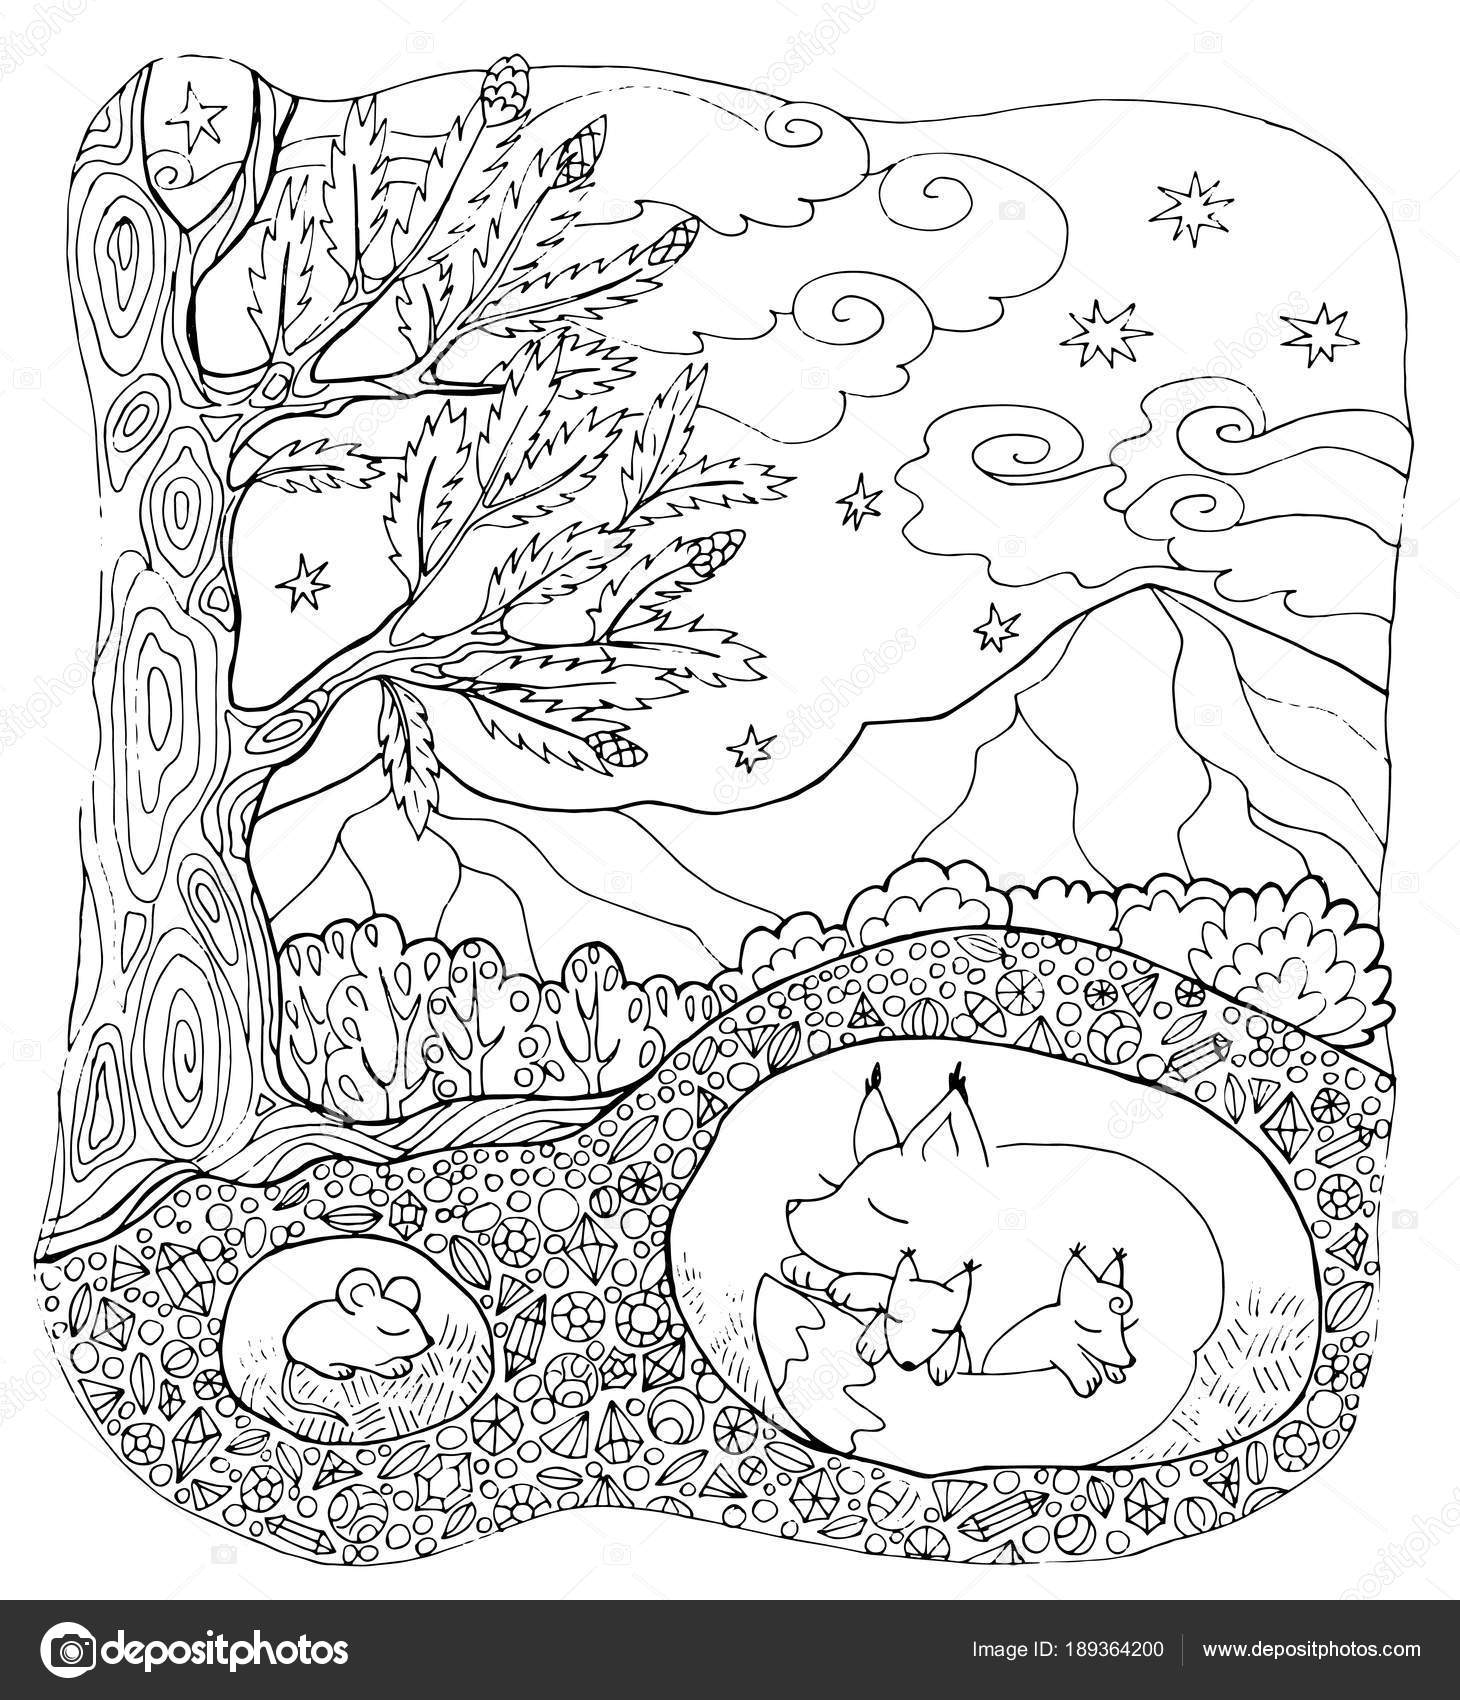 Coloring Page Forest Animals Stock Vector C Snowkat 189364200